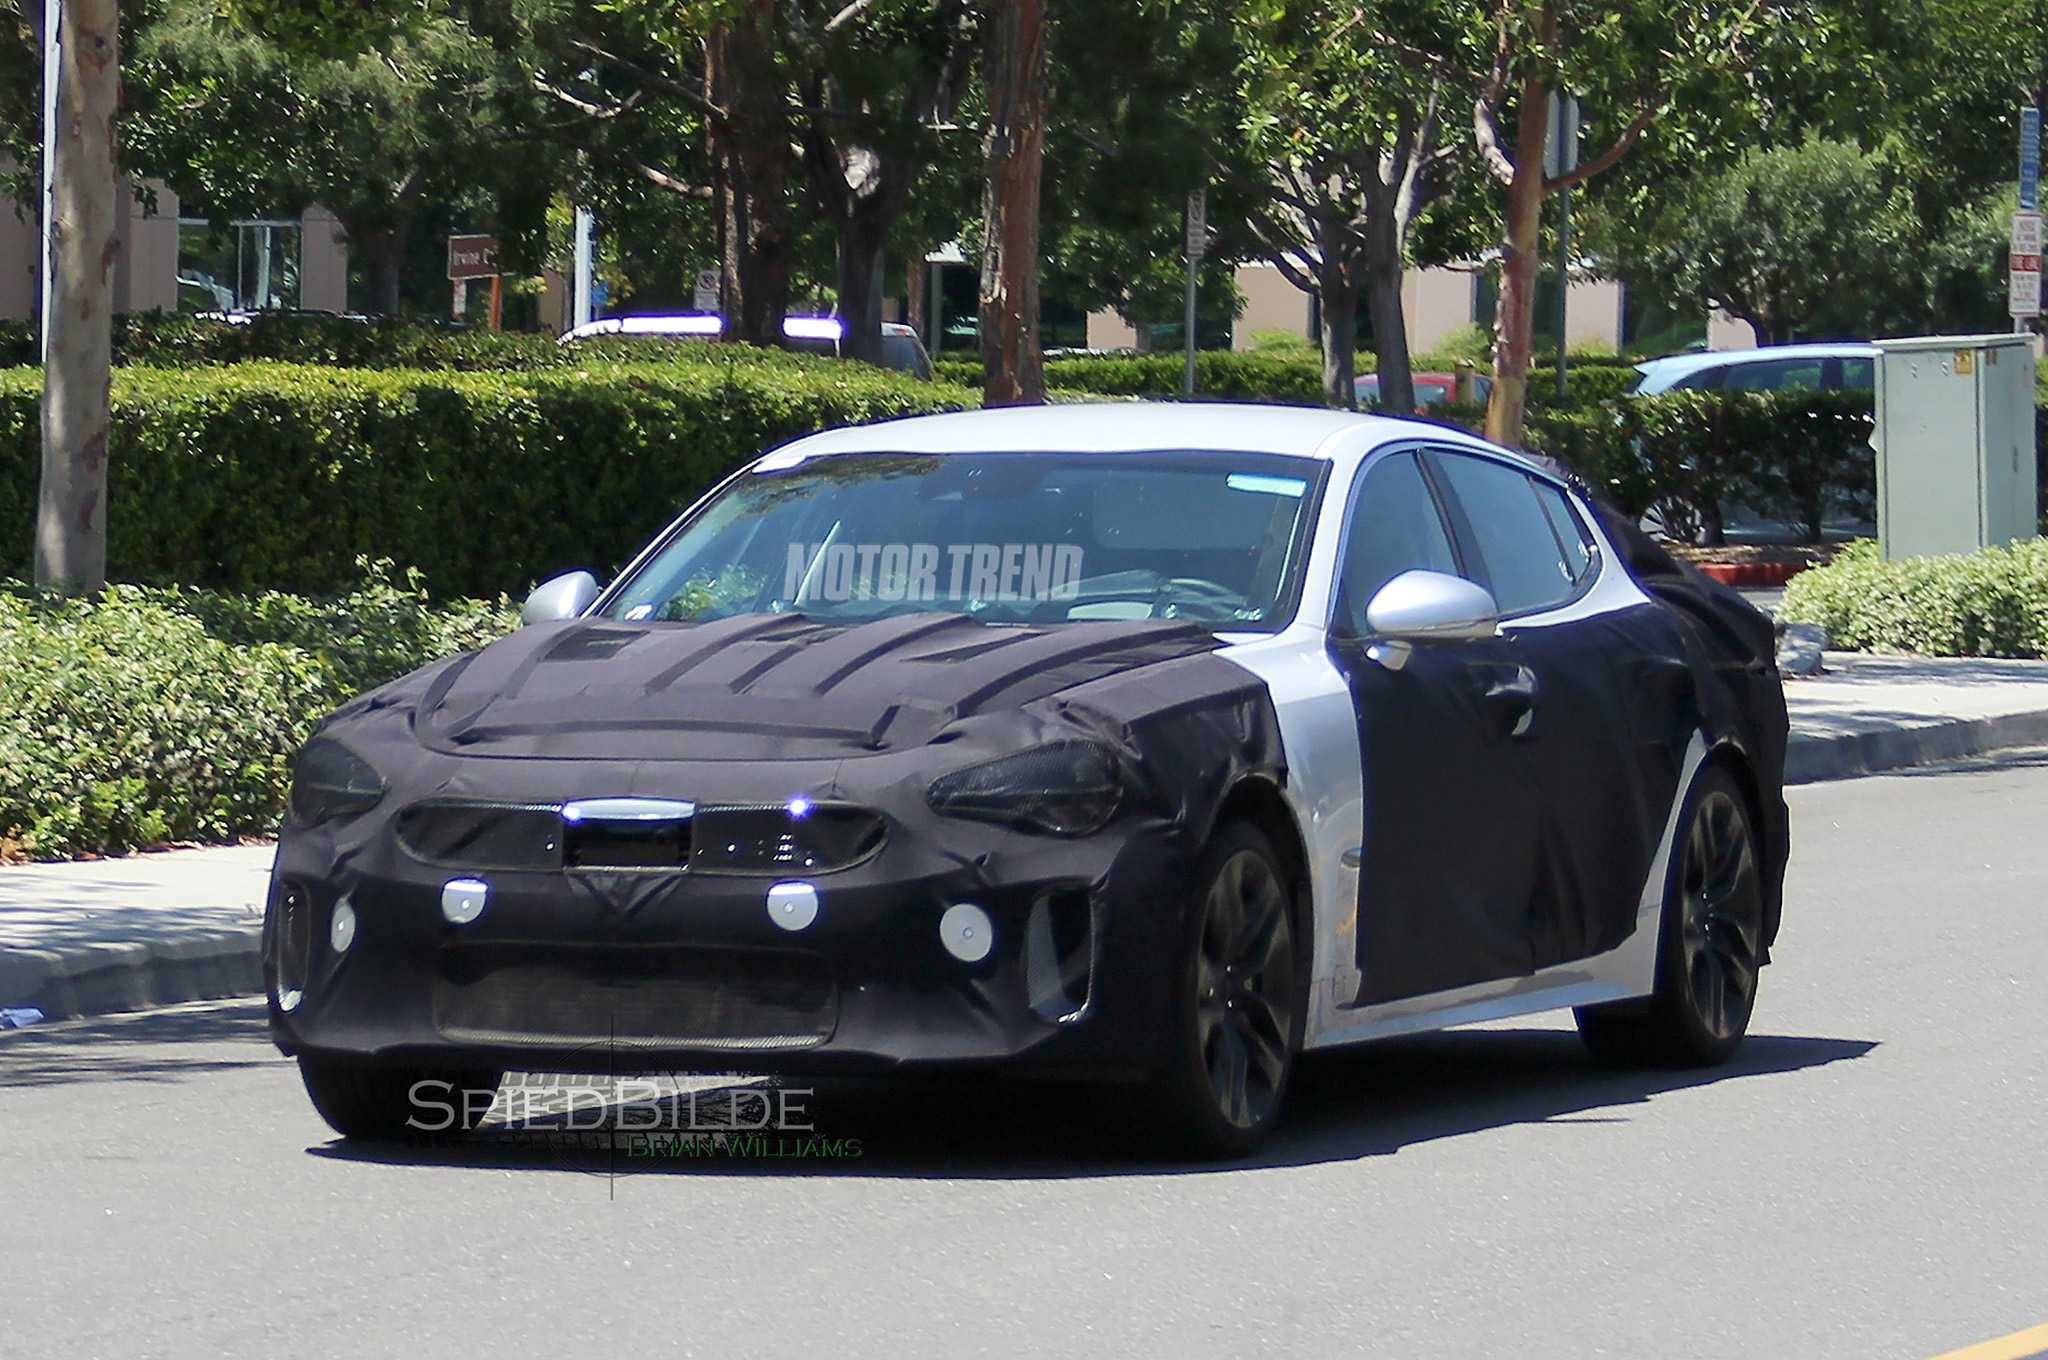 Kia GT Prototype Spy Pictures Emerge From Testing Phase